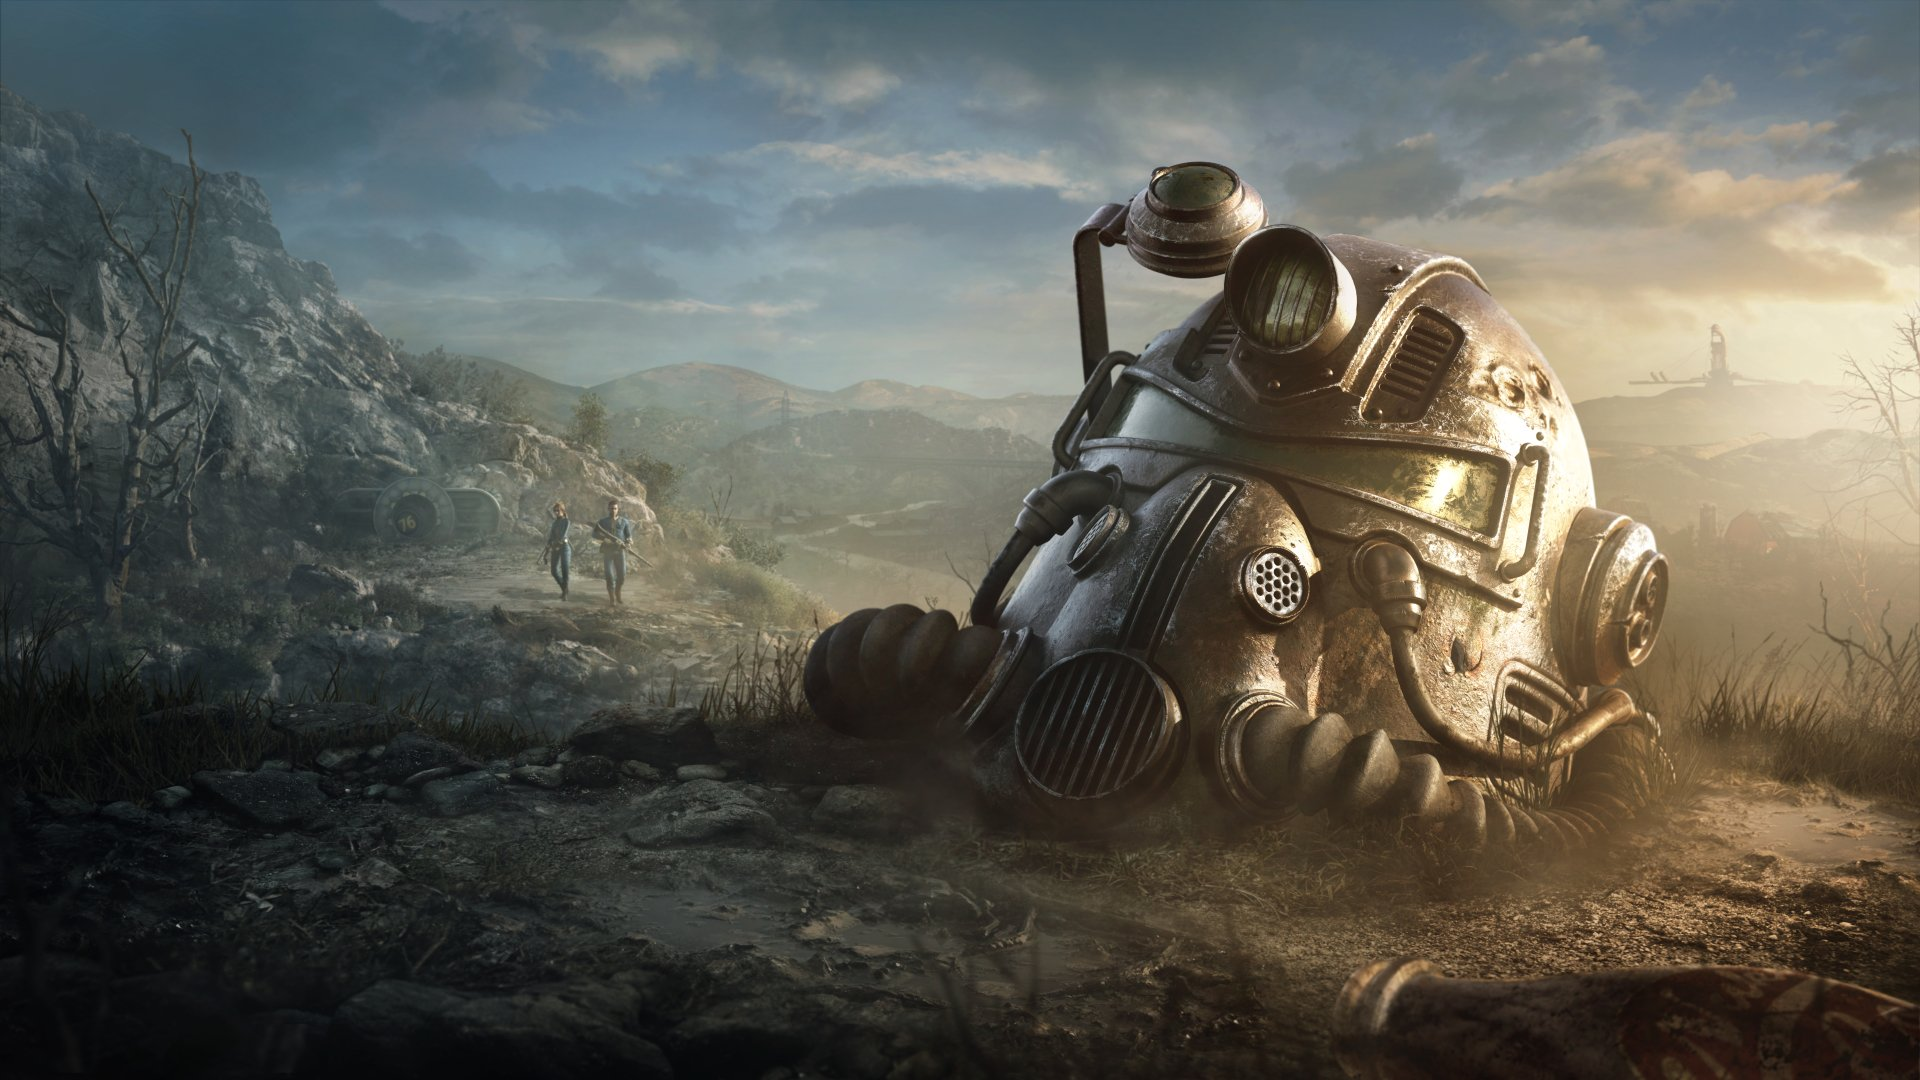 12 Fallout 76 Hd Wallpapers Background Images Wallpaper Abyss